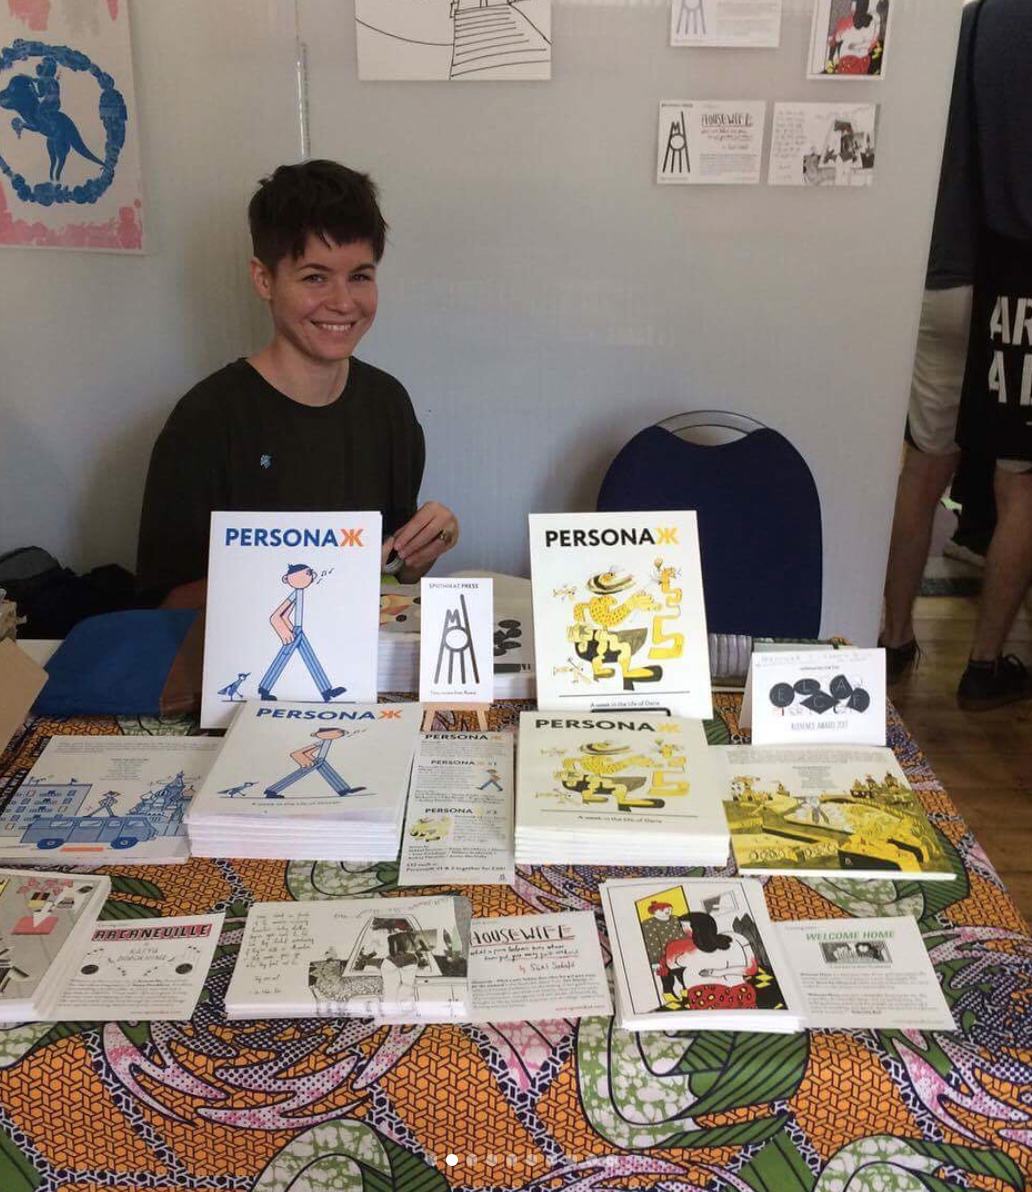 Sari with copies of PersonaЖ at ELCAF, 2017